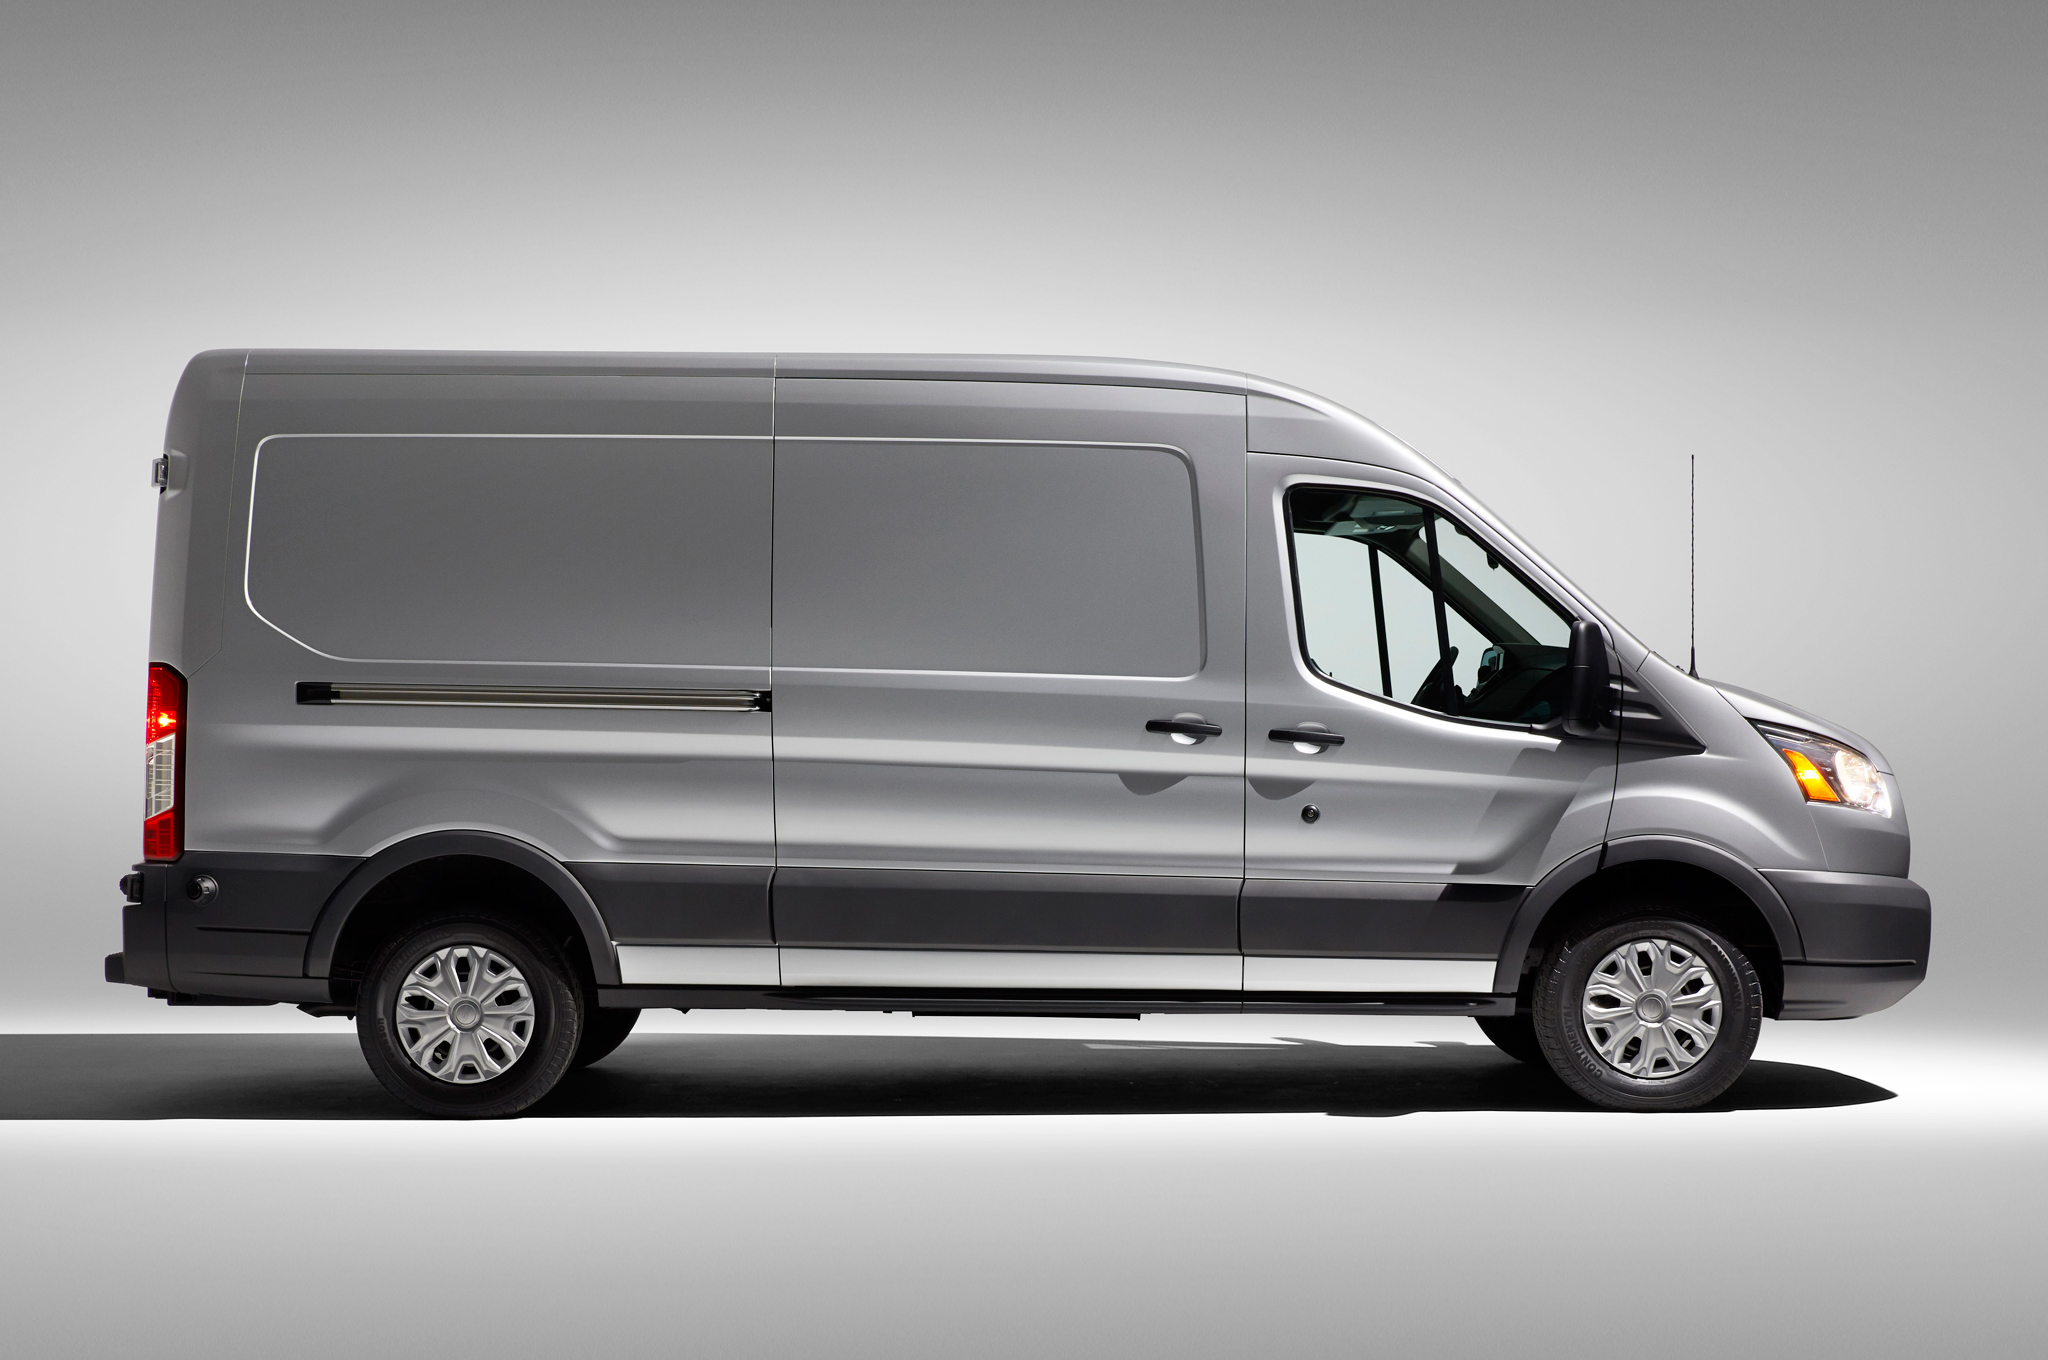 2015 ford transit 150 rear exterior 630 cars. Black Bedroom Furniture Sets. Home Design Ideas